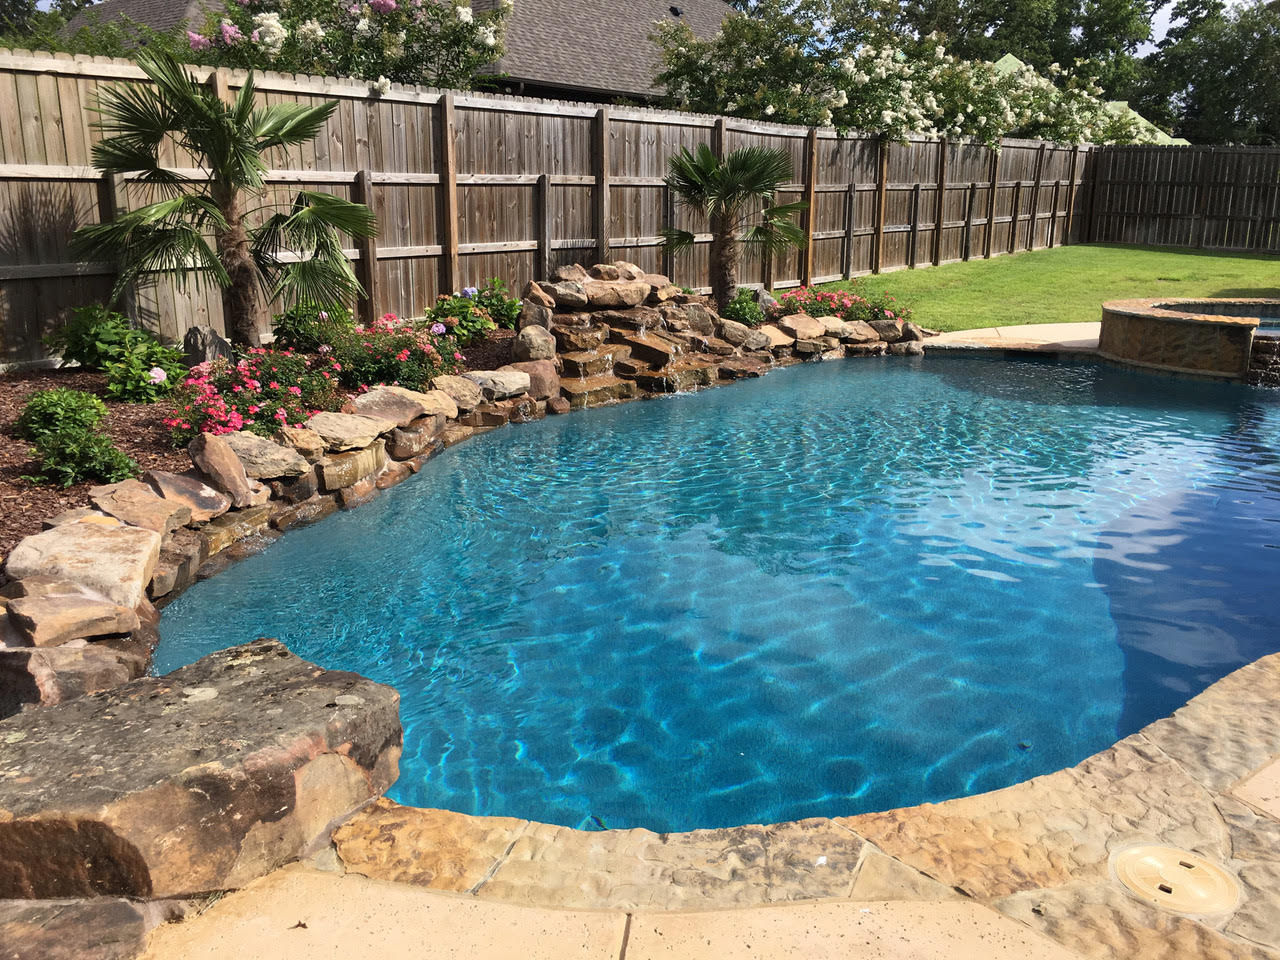 Trinity valley pools palestine texas - Above ground swimming pools tyler texas ...